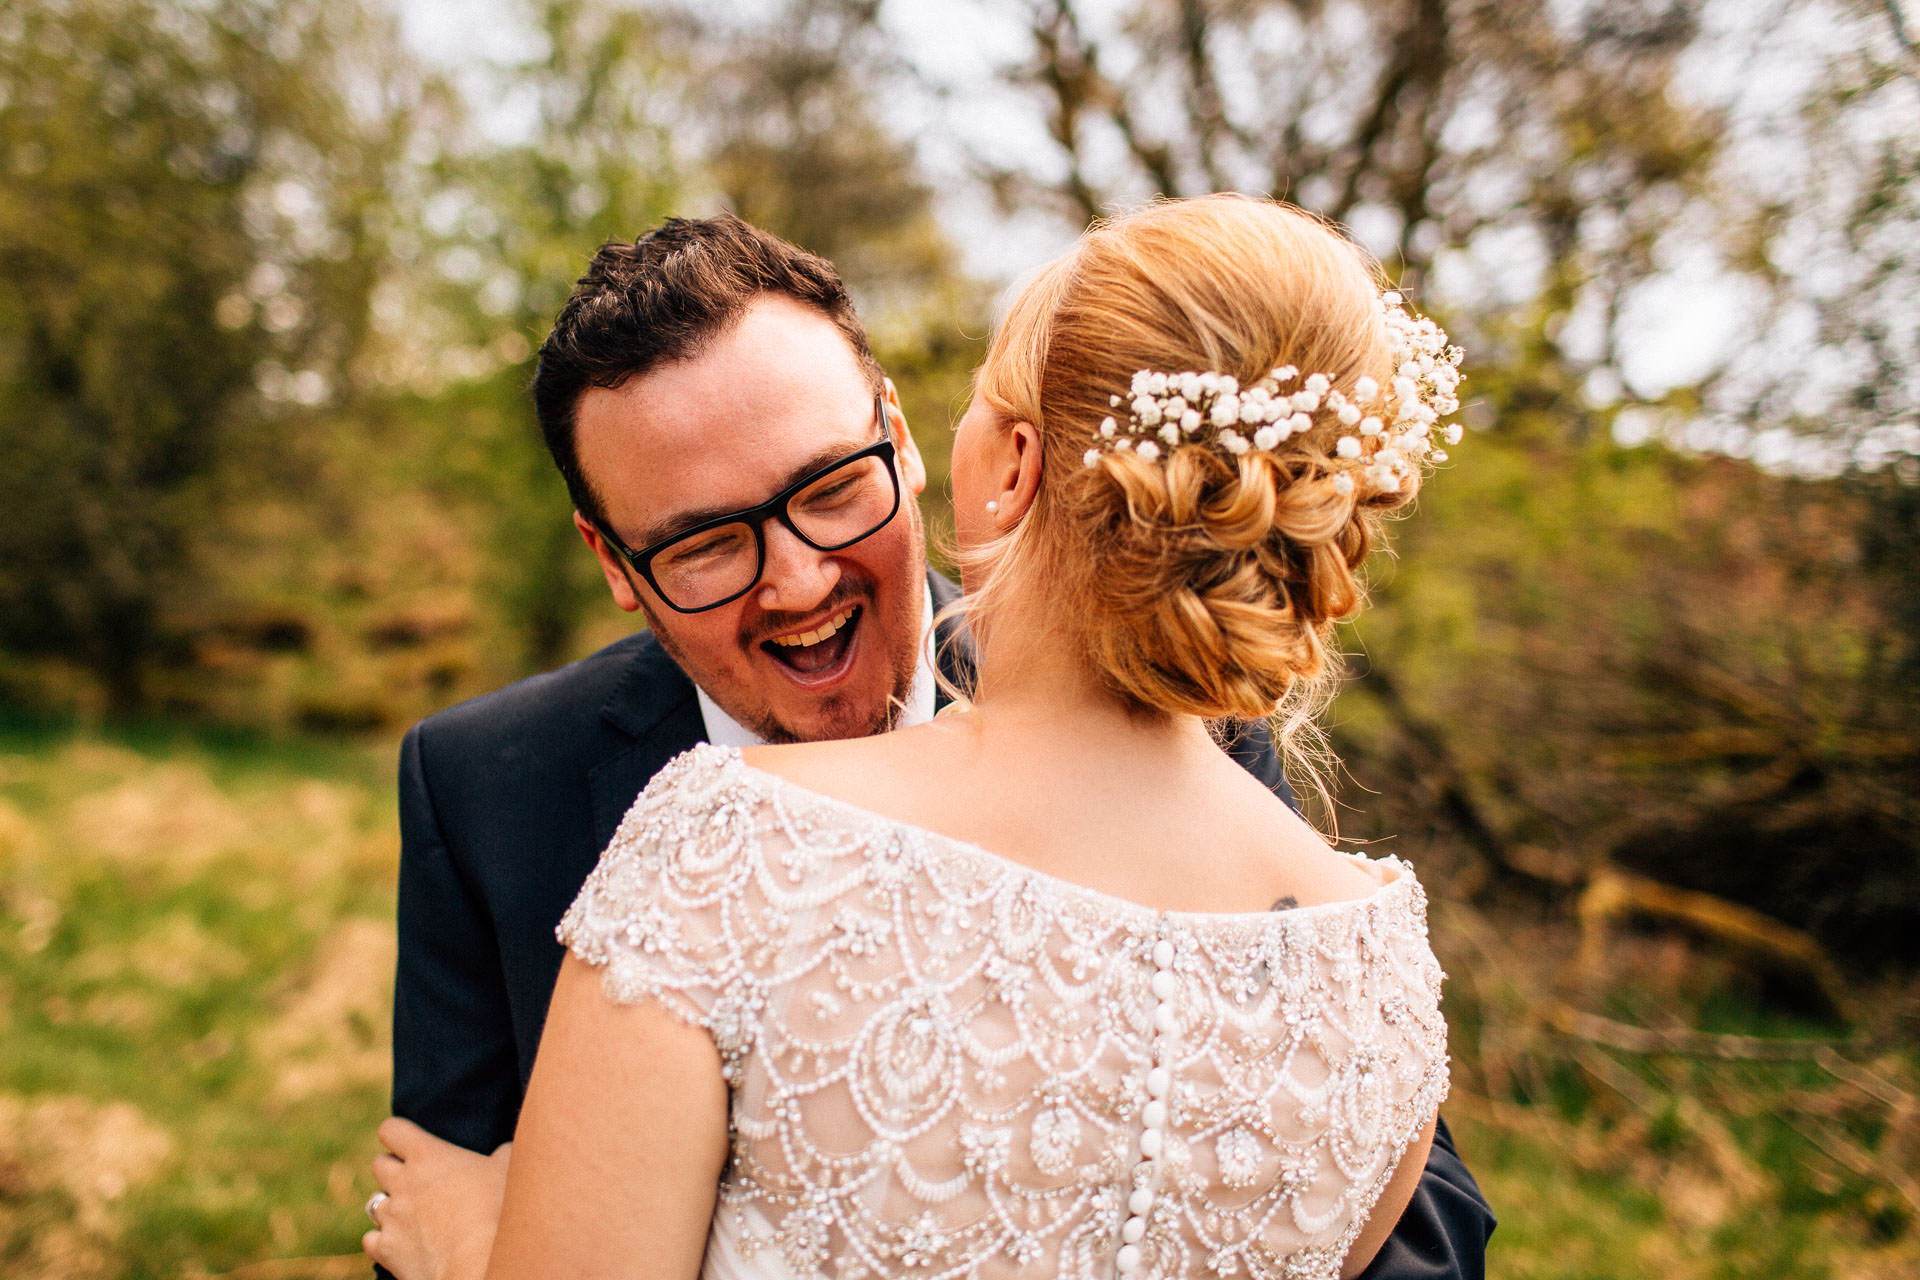 The Wild Boar Wedding Photography - EM - groom laughing during portraits